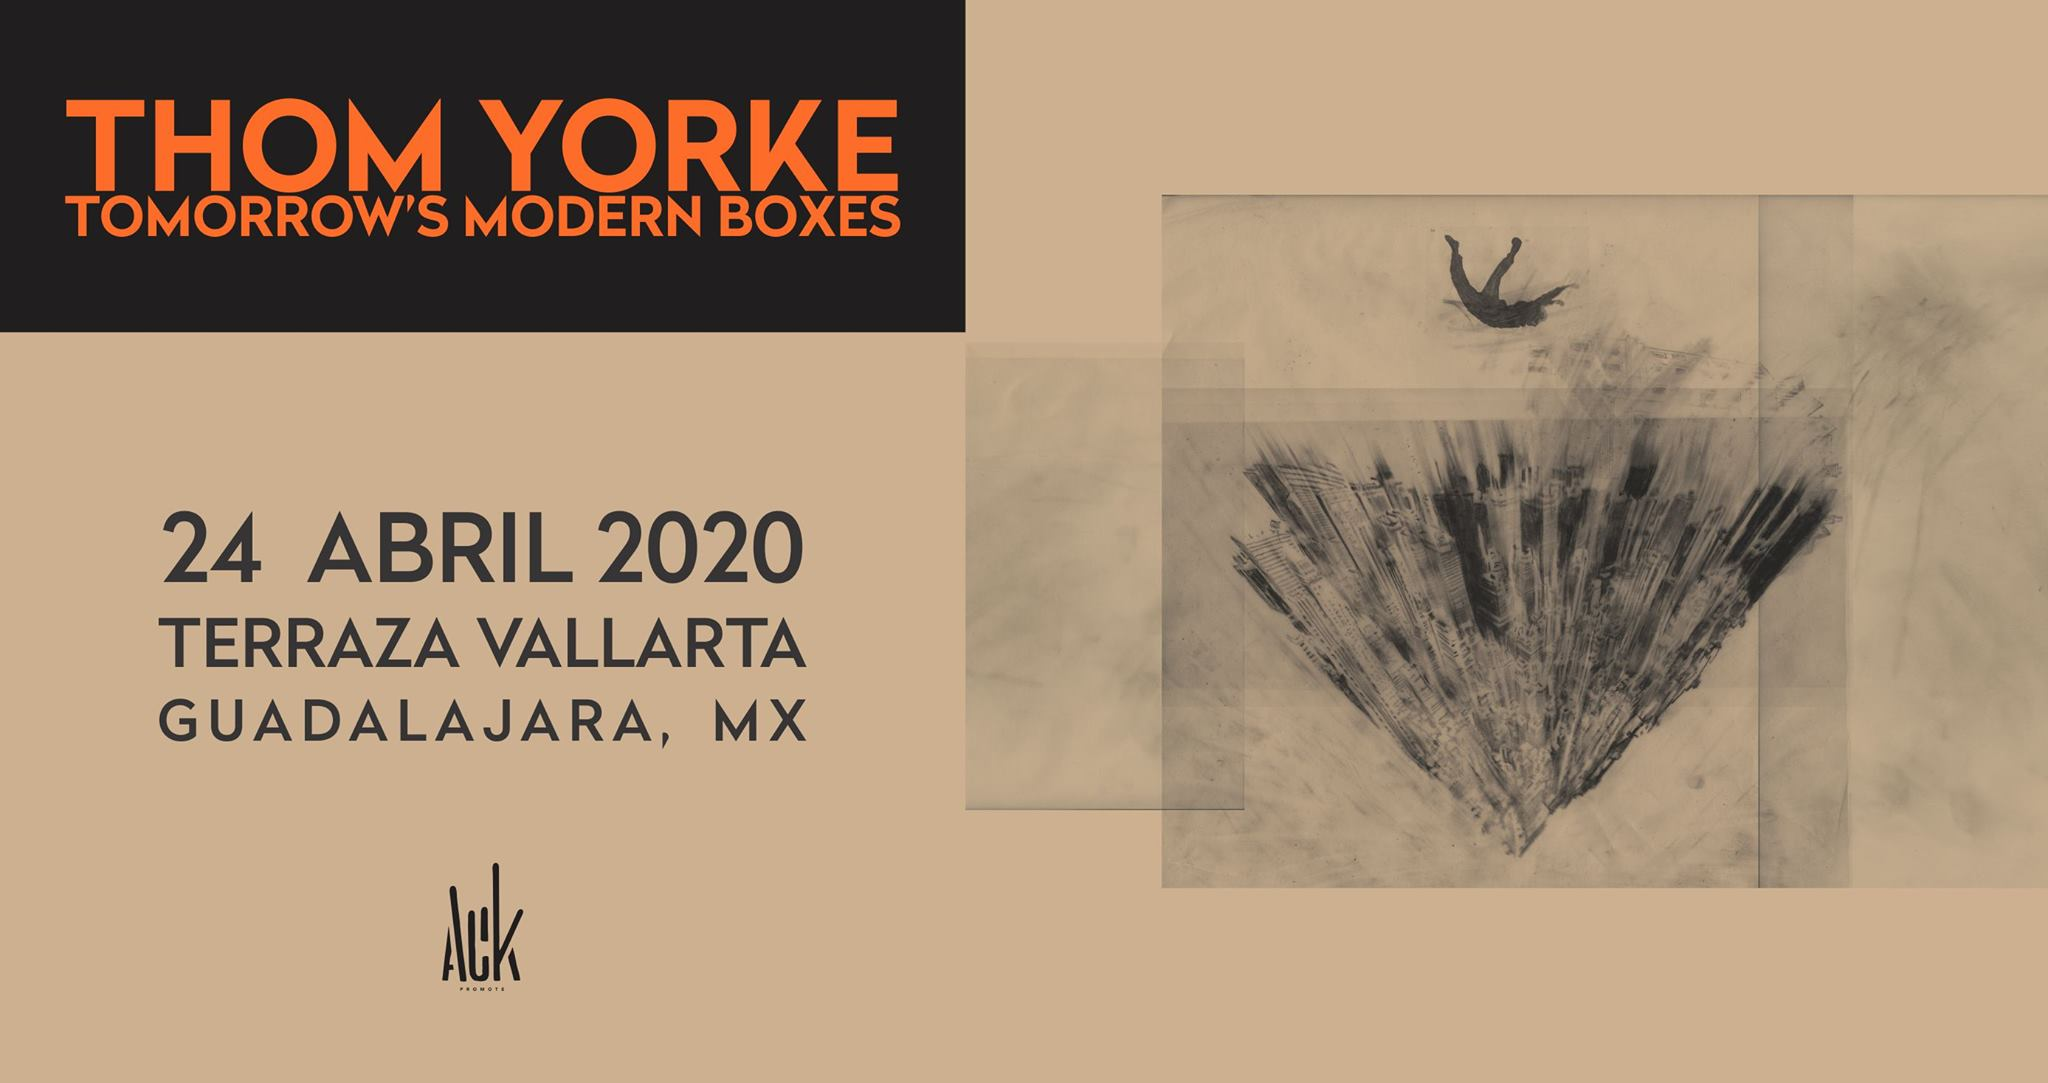 THOM YORKE Tomorrow's Modern Boxes GDL